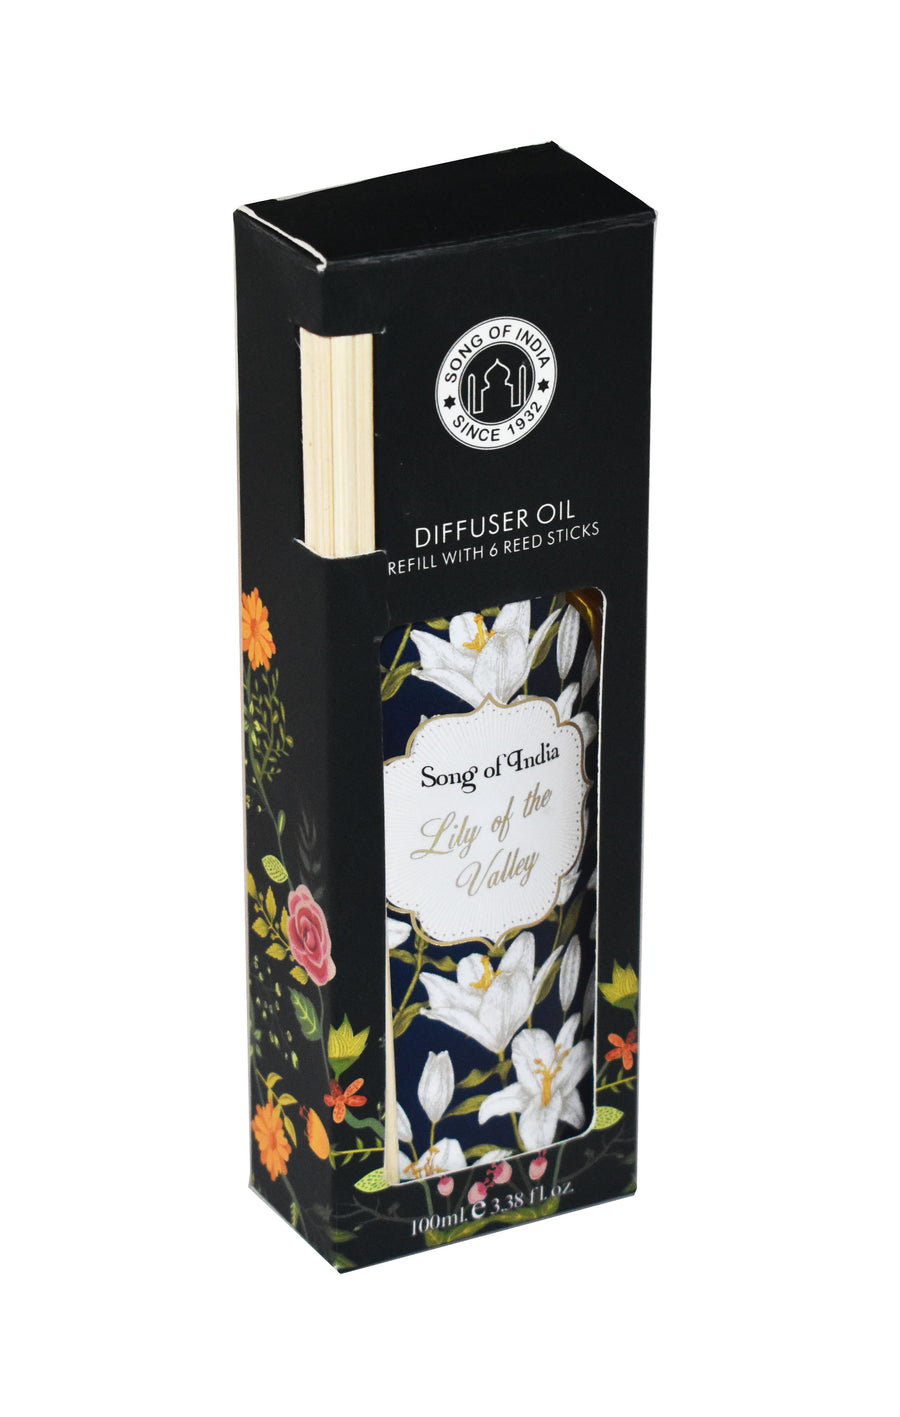 Song of India 100 ml Lily of the Valley Little Pleasures Diffuser Oil